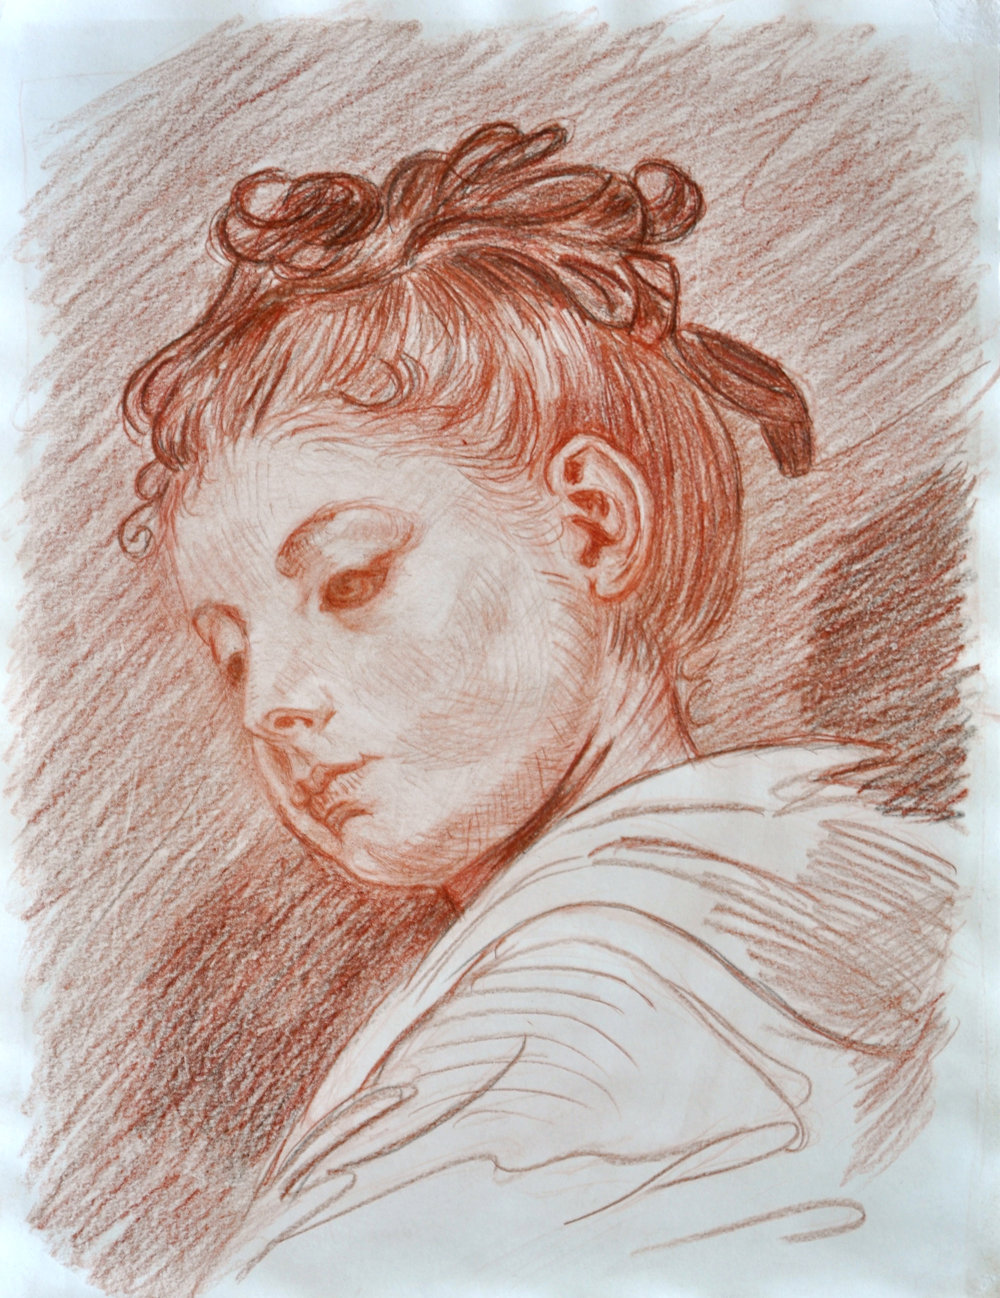 - This is a student's master copy of a drawing after Jean Baptiste Greuze. Doing copy drawings and paintings teach students how to see think and draw like the masters. It's just like learning a classical piano piece.